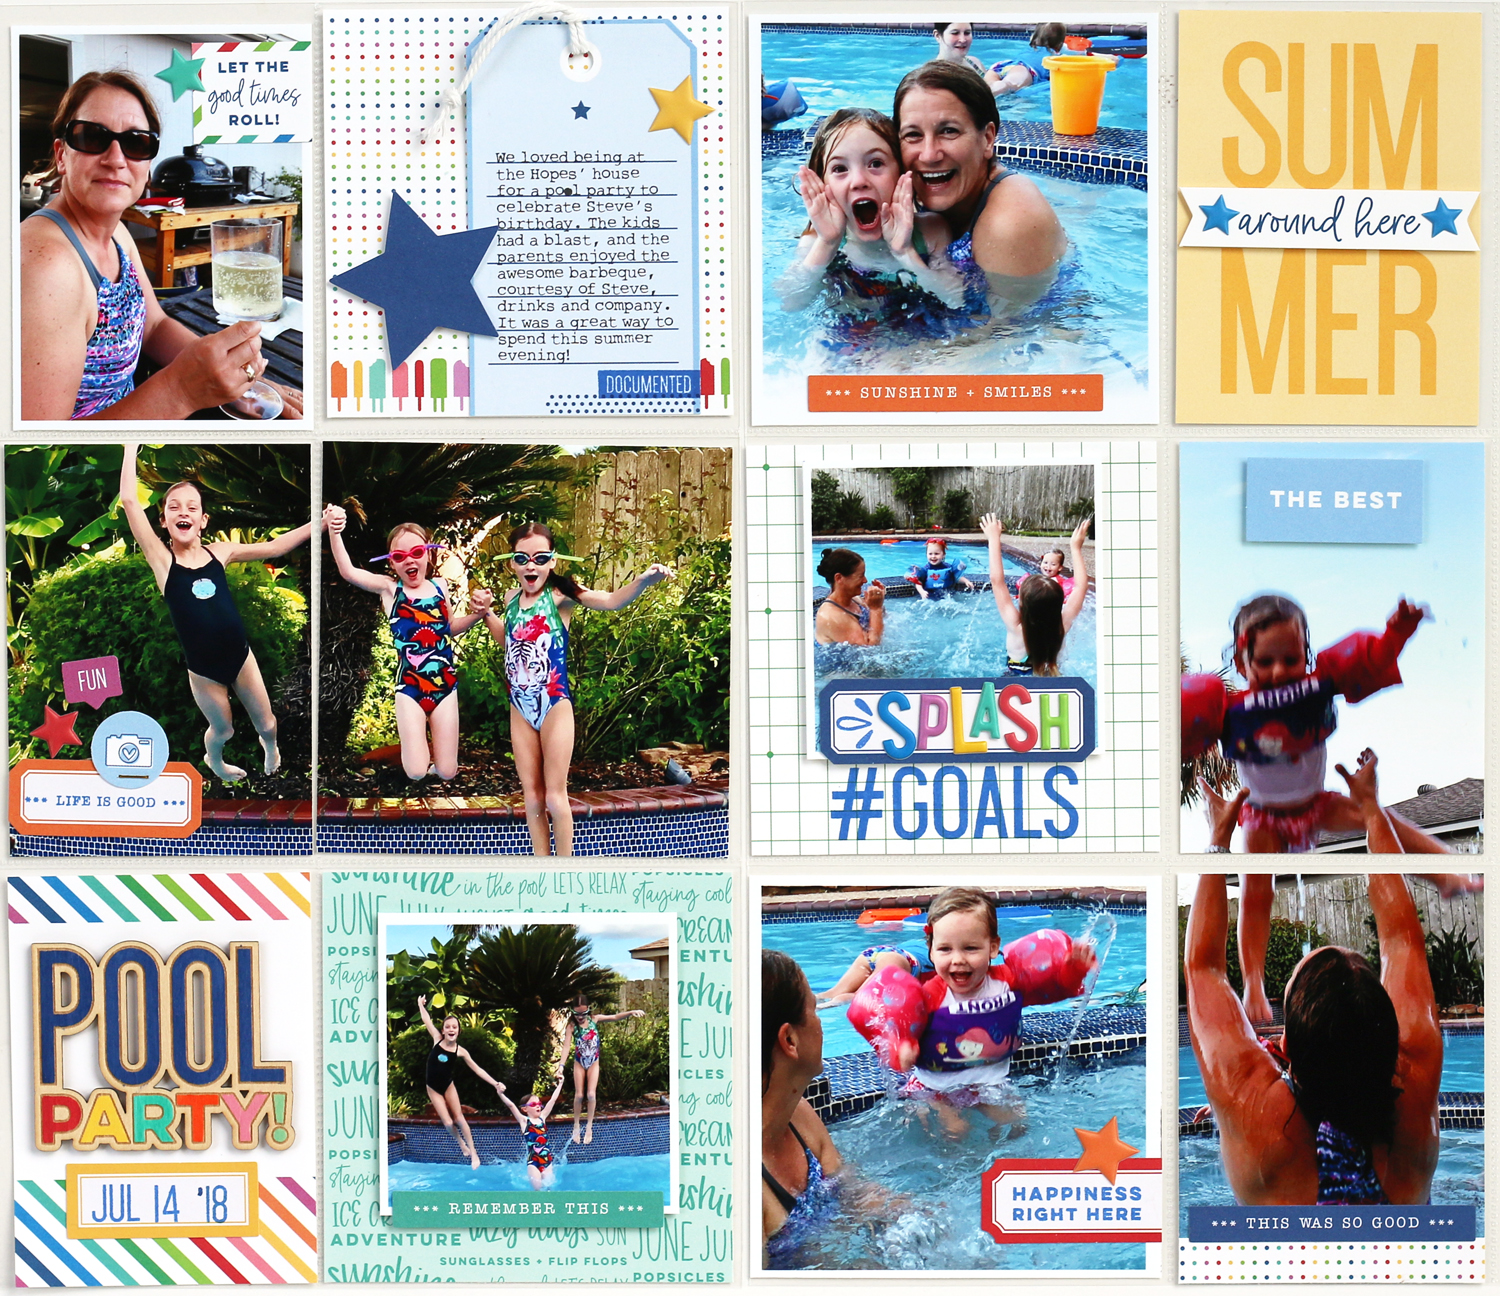 EllesStudio_MeghannAndrew_PoolPartyPockets_01.jpg